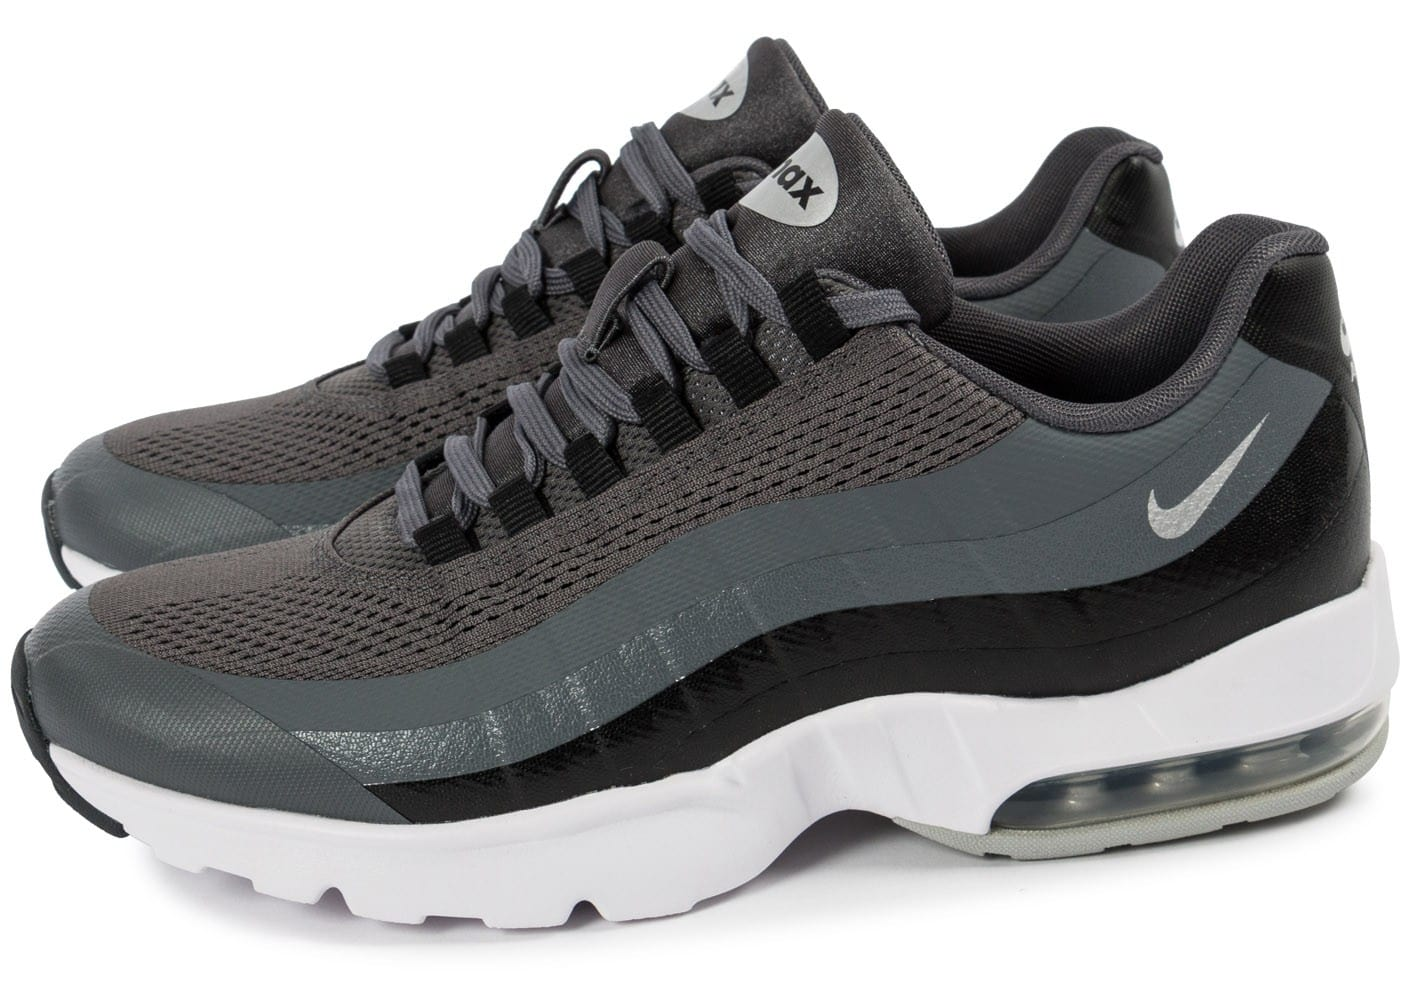 nike air max 95 ultra grise chaussures chaussures chausport. Black Bedroom Furniture Sets. Home Design Ideas